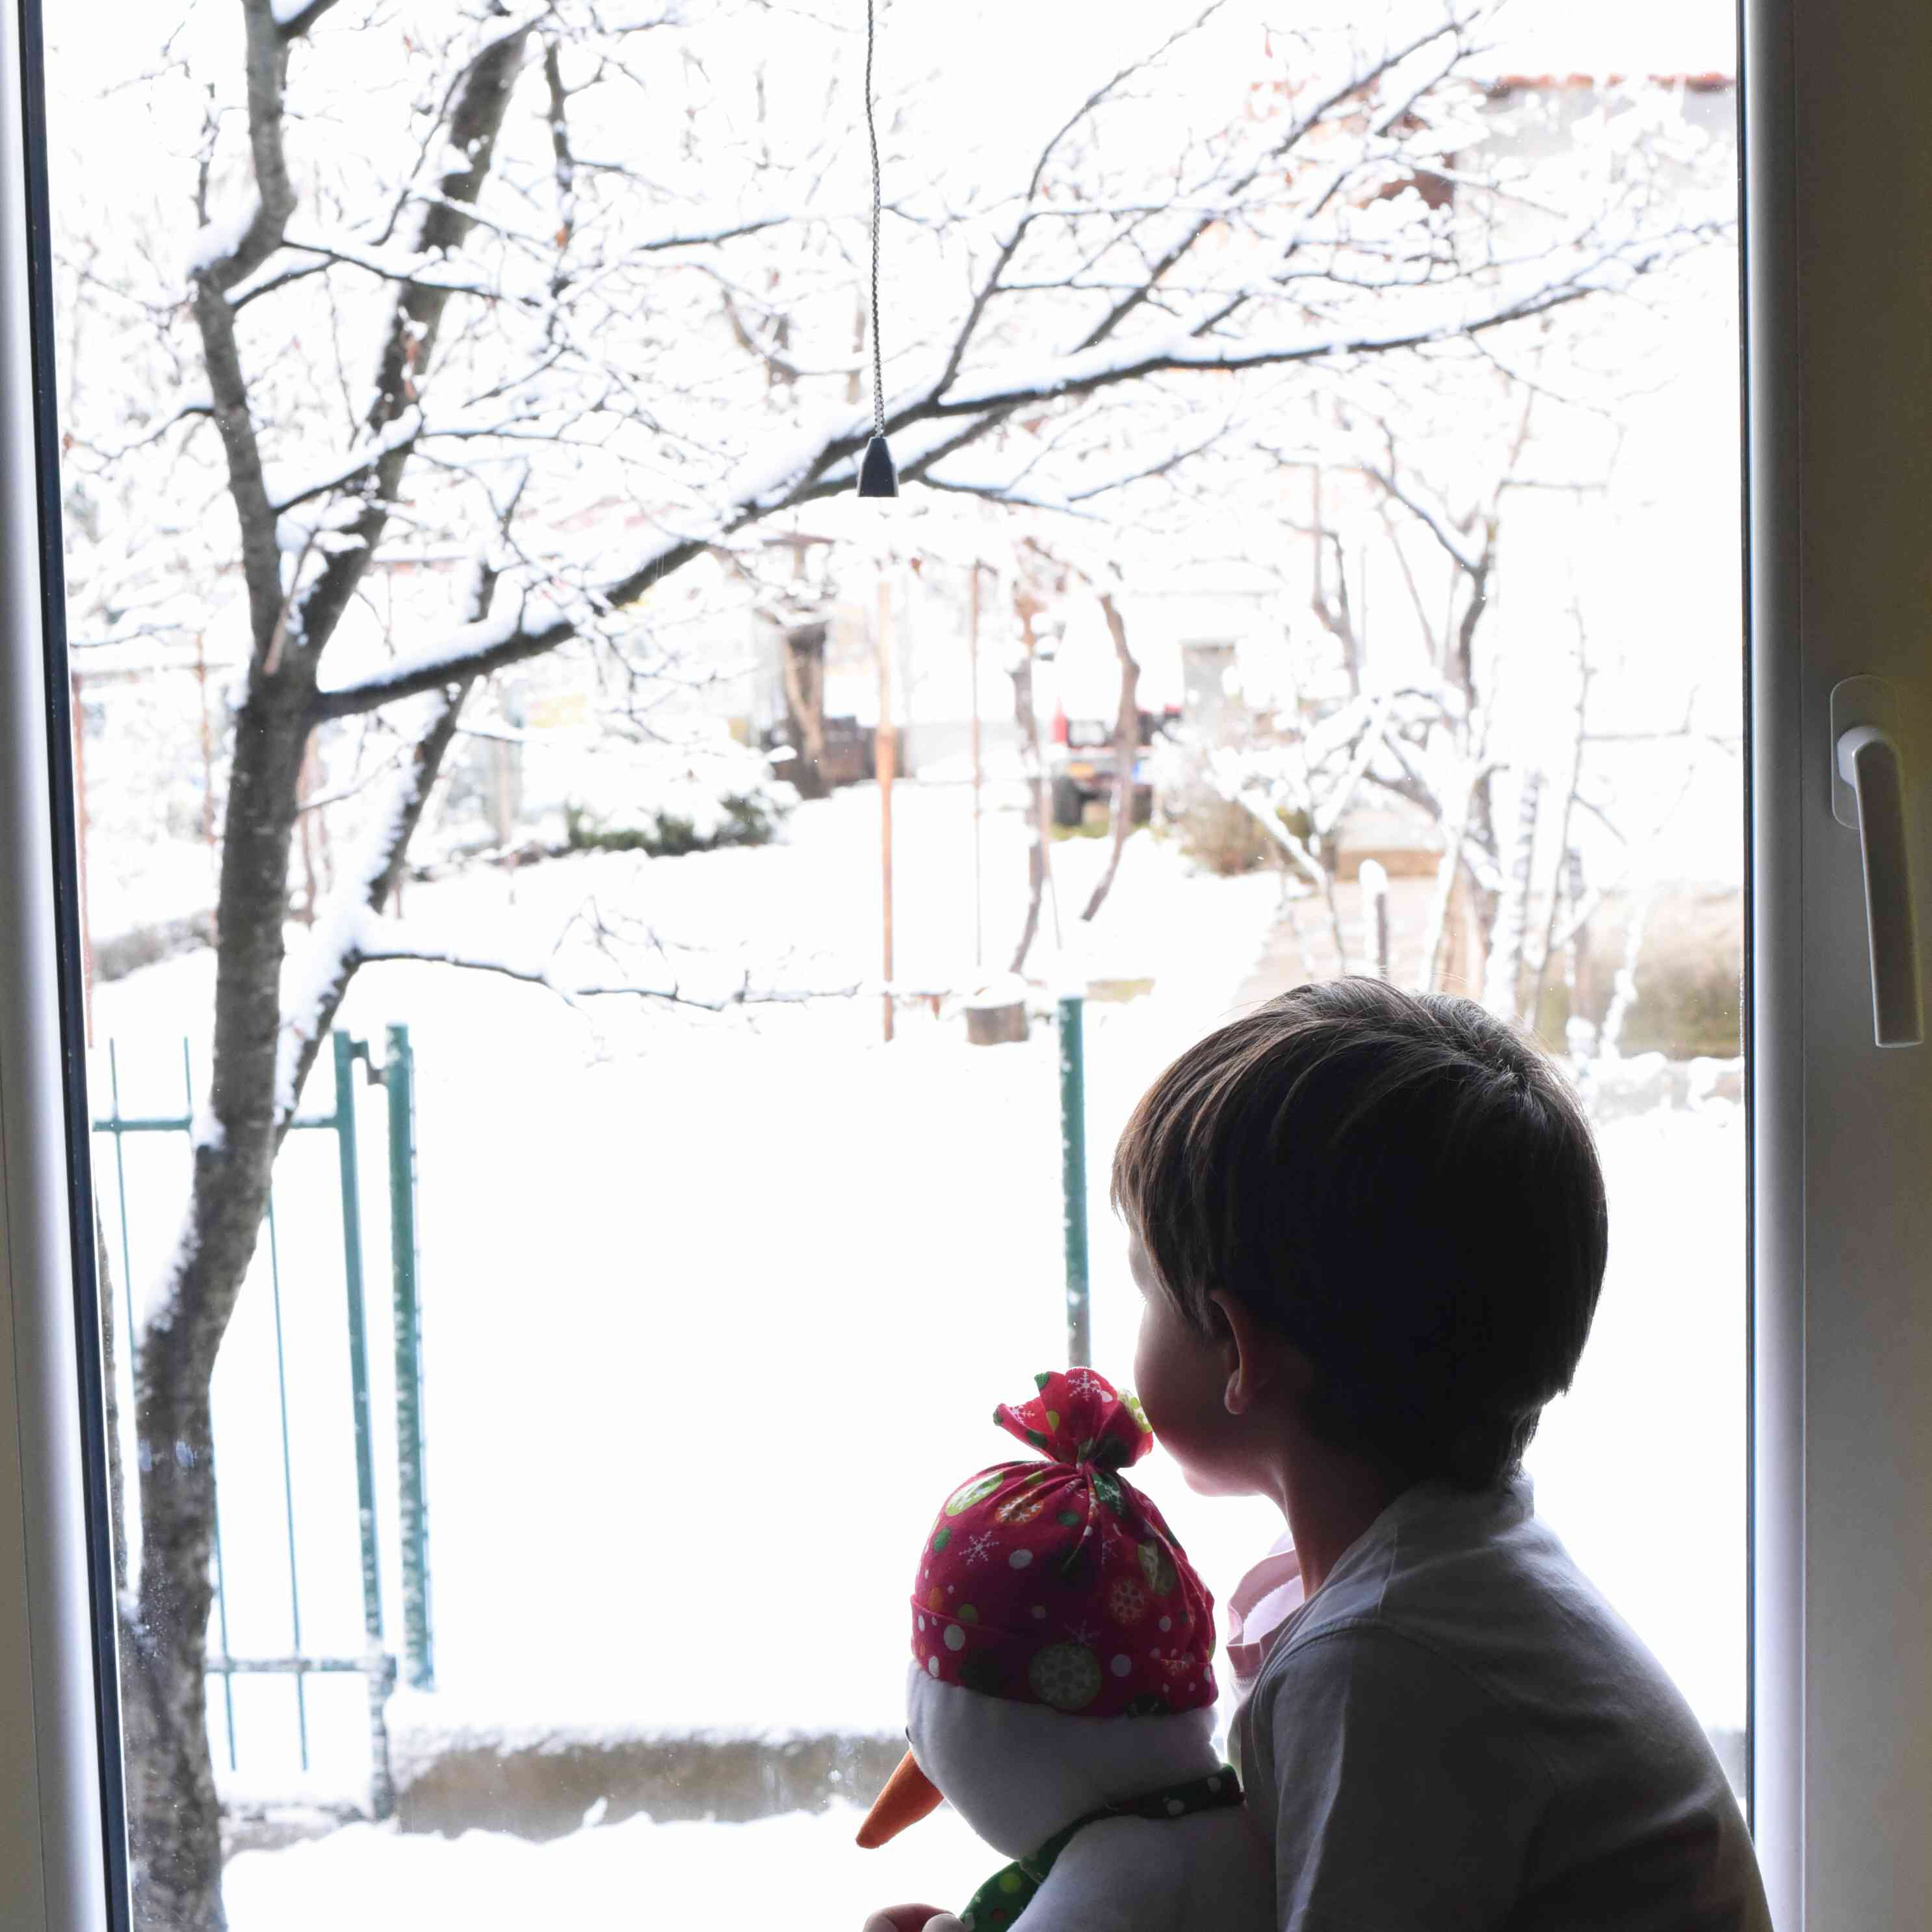 Looking out the window at a snowy scene.